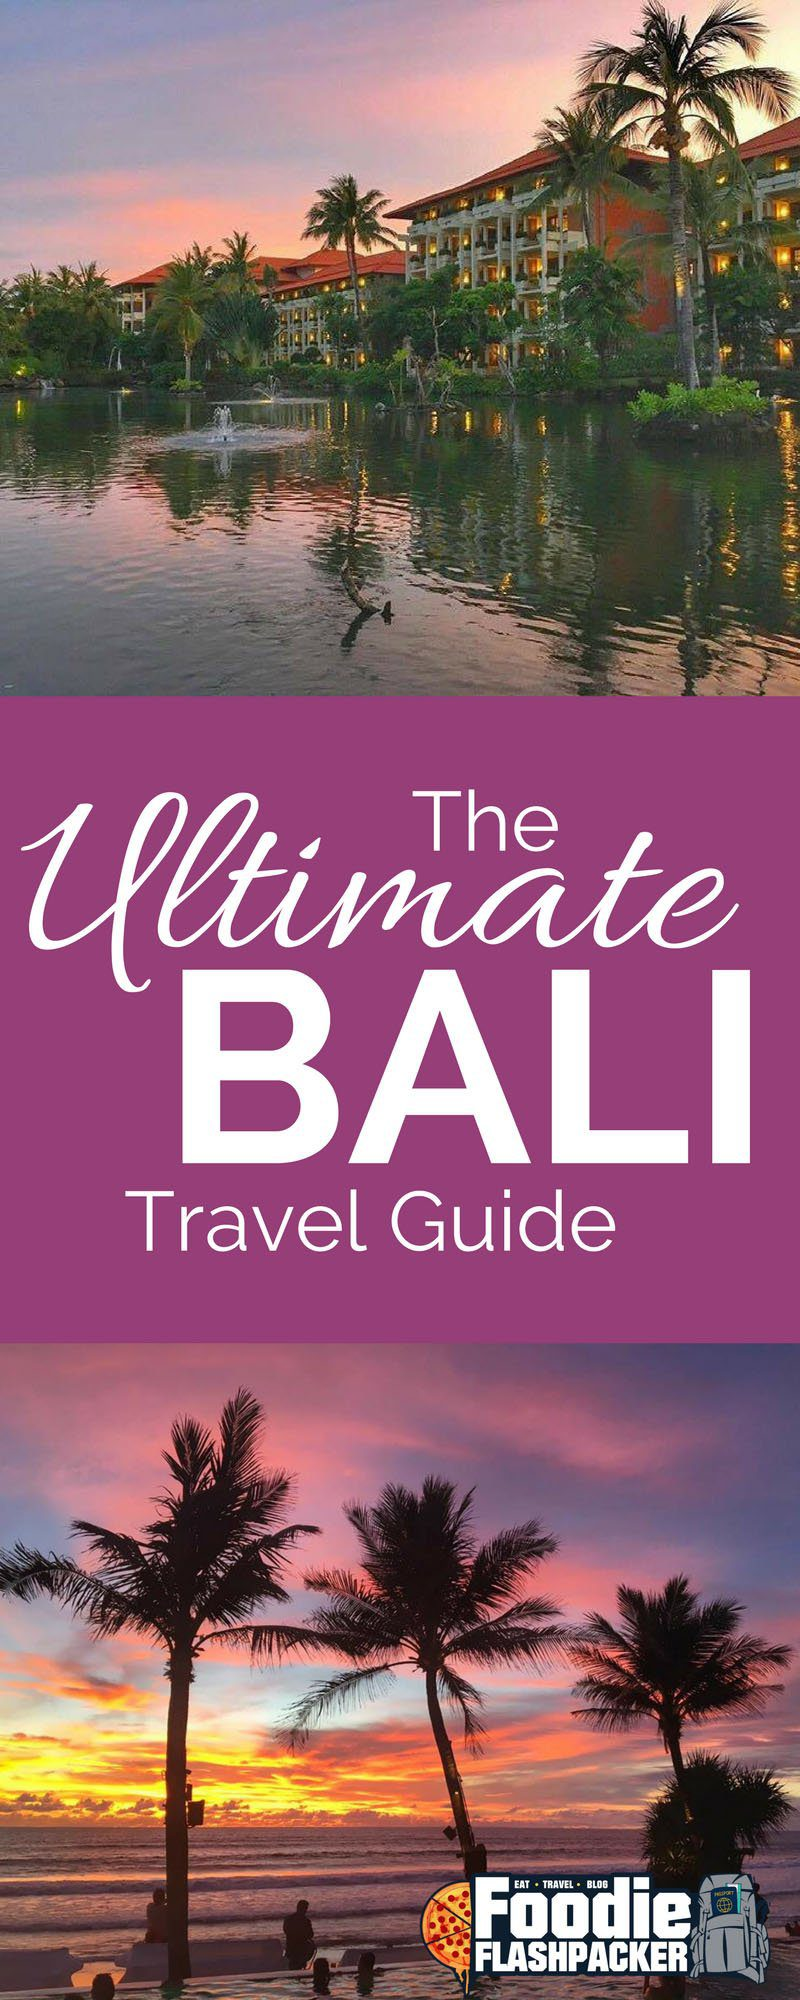 Bali is an entire island made up of many different towns, all unique and different. Having just finished a second visit spending a collective three months exploring Bali, I've developed this Ultimate Bali Travel Guide. Here I'll break down what to see and do, where to stay, and where to eat in the most popular towns throughout Bali.